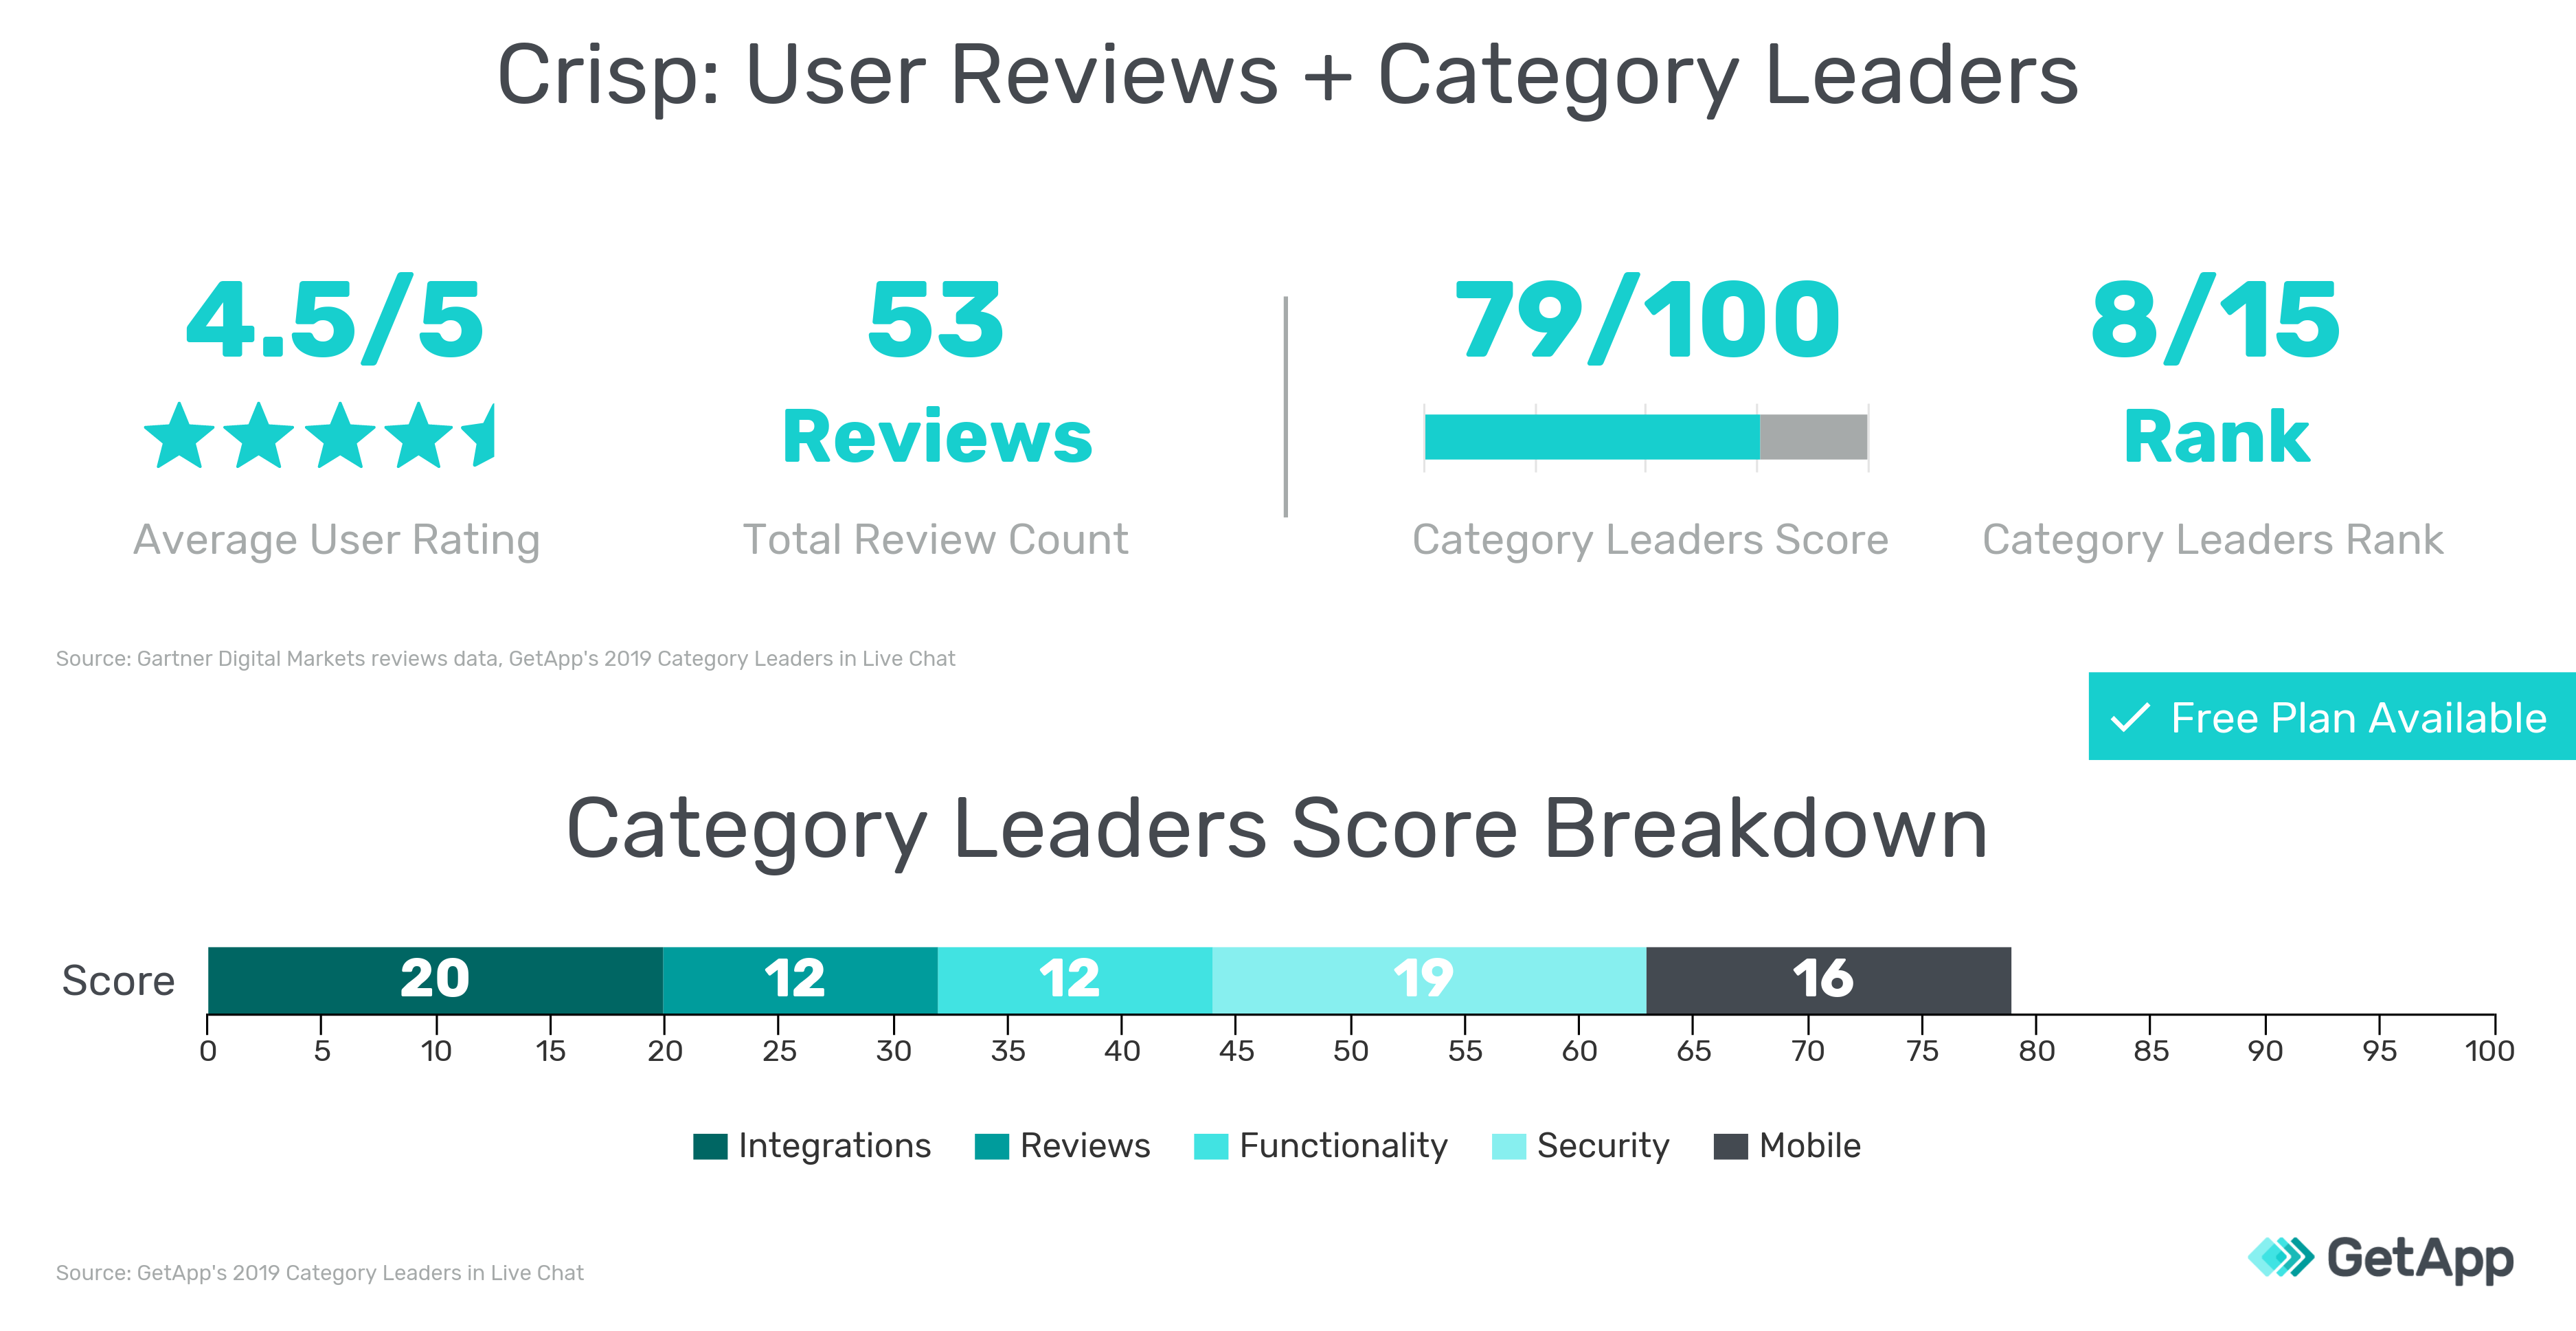 User reviews information and 2019 Category Leaders scores for Crisp graphic